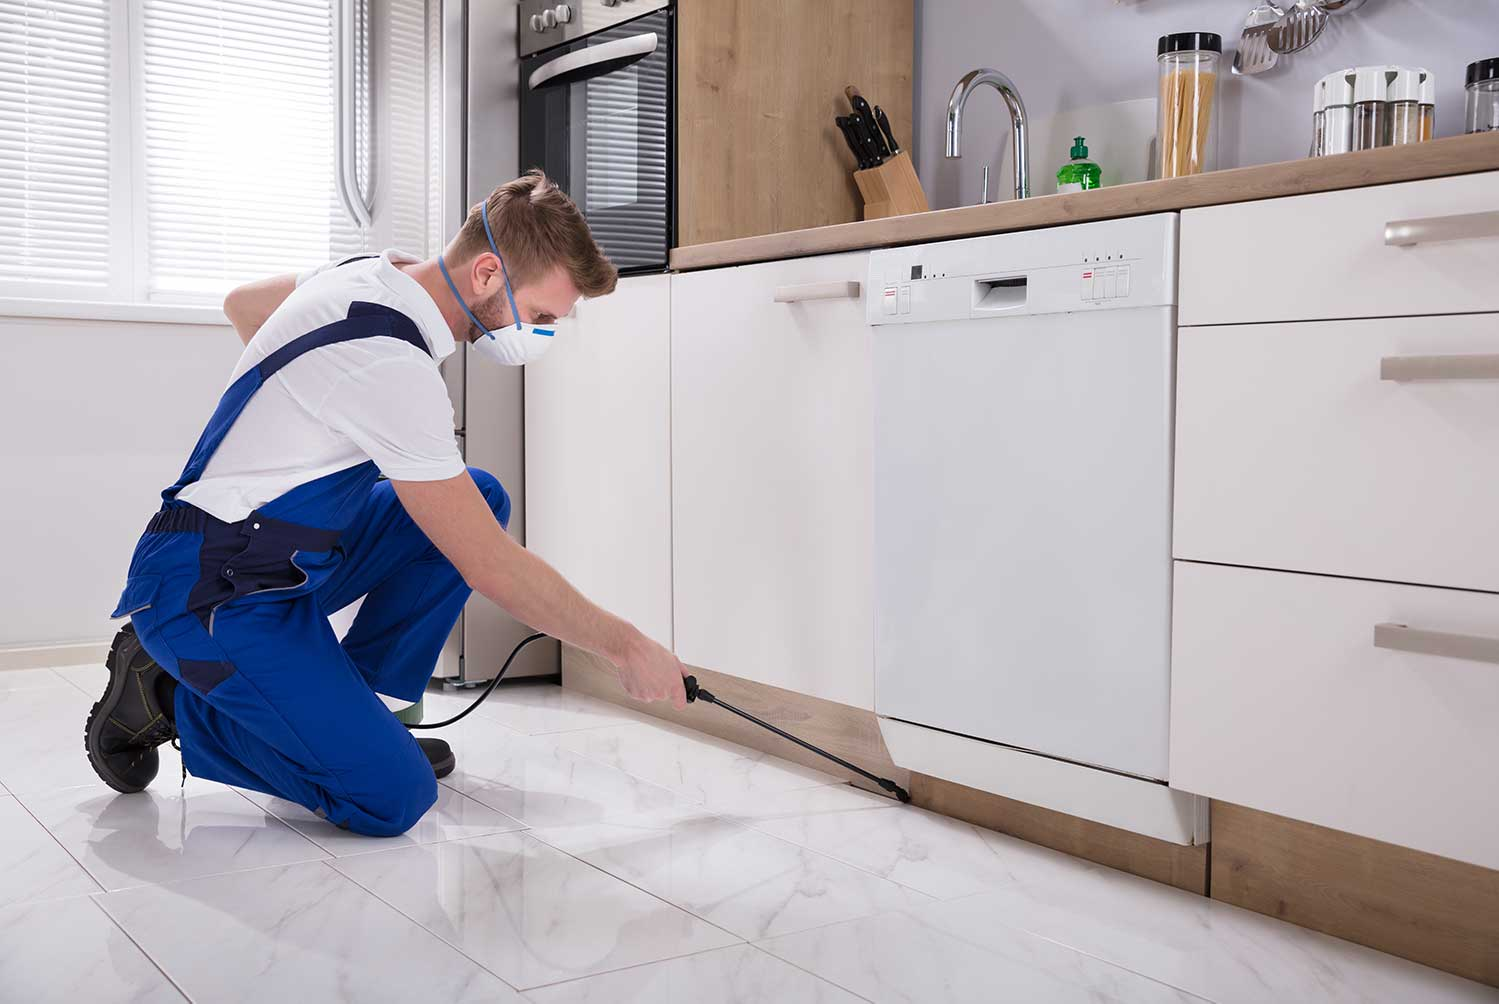 Pest Control Technicians in Guelph